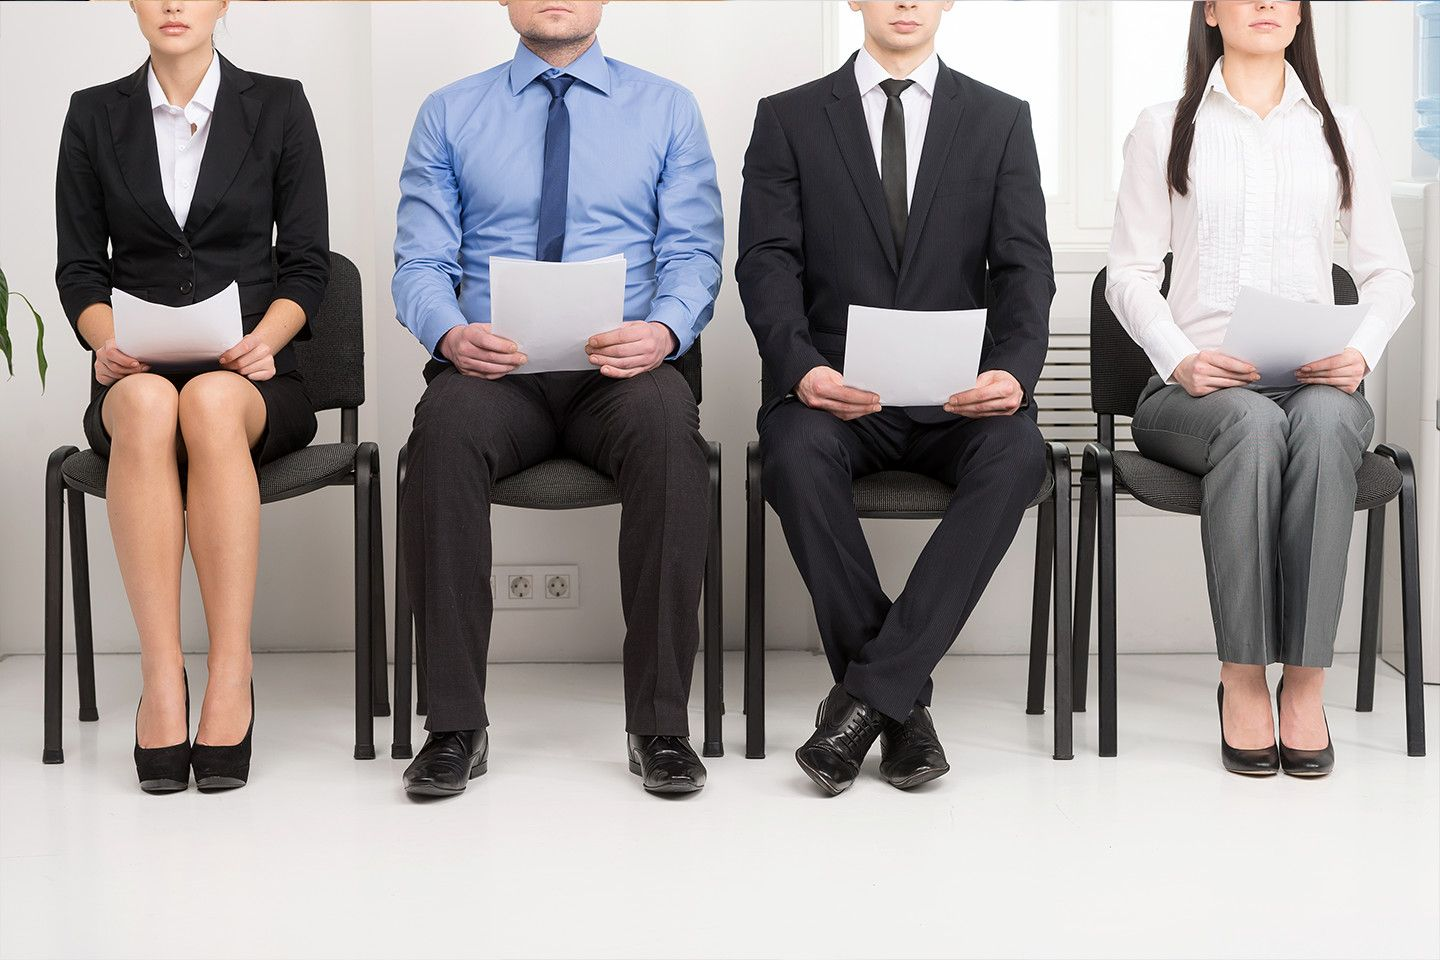 interview-like-a-pro-recruiters-expectations